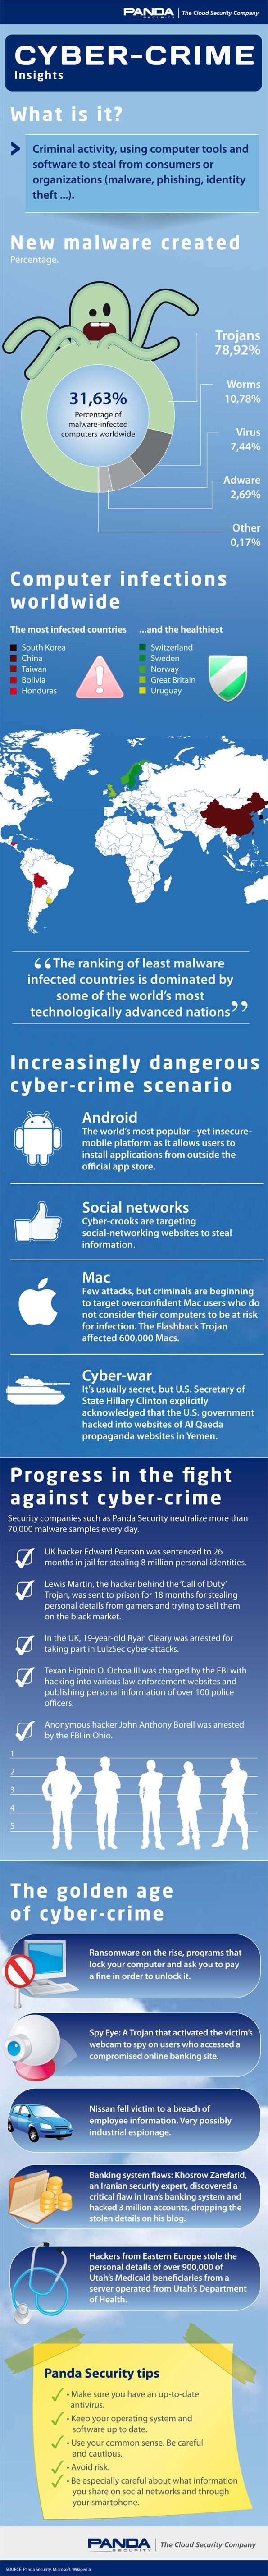 Learn more about cyber-crime